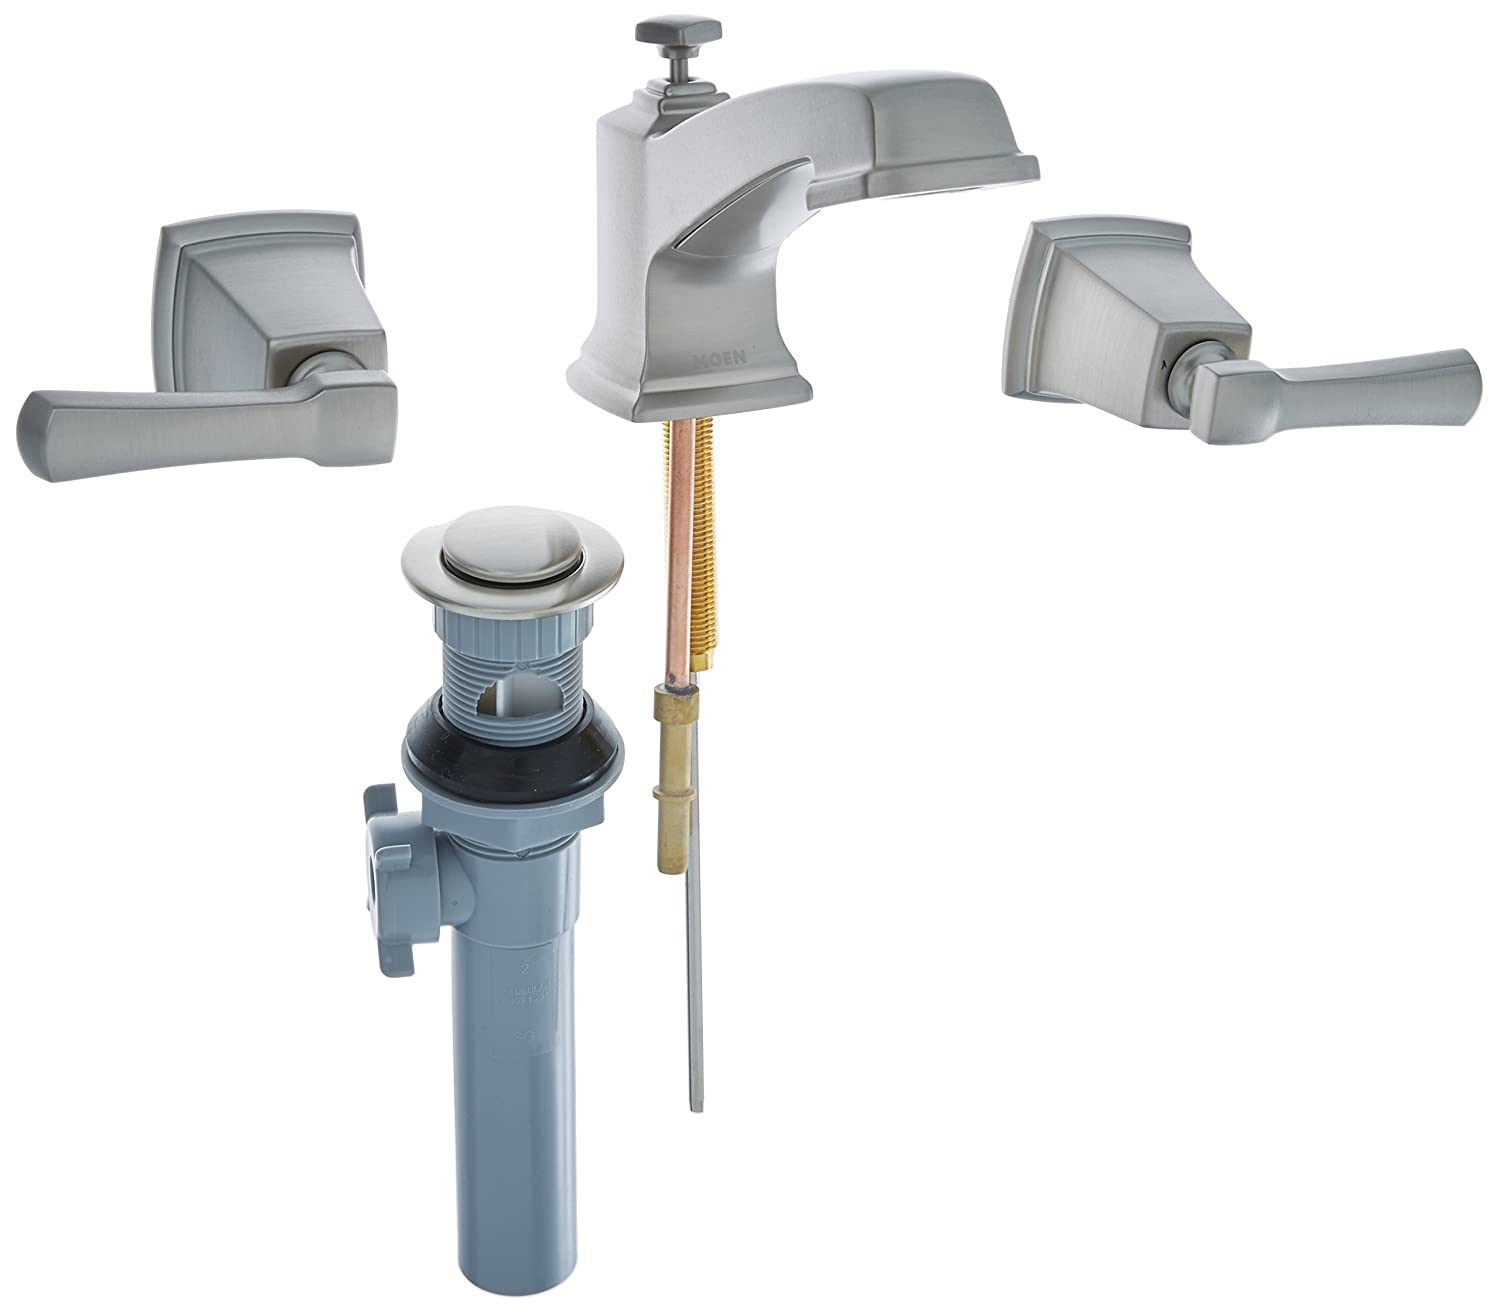 Magnificent Moen 84820Srn Double Handle Widespread Bathroom Faucet From The Boardwalk Collection Spot Resist Brushed Nickel Interior Design Ideas Inesswwsoteloinfo